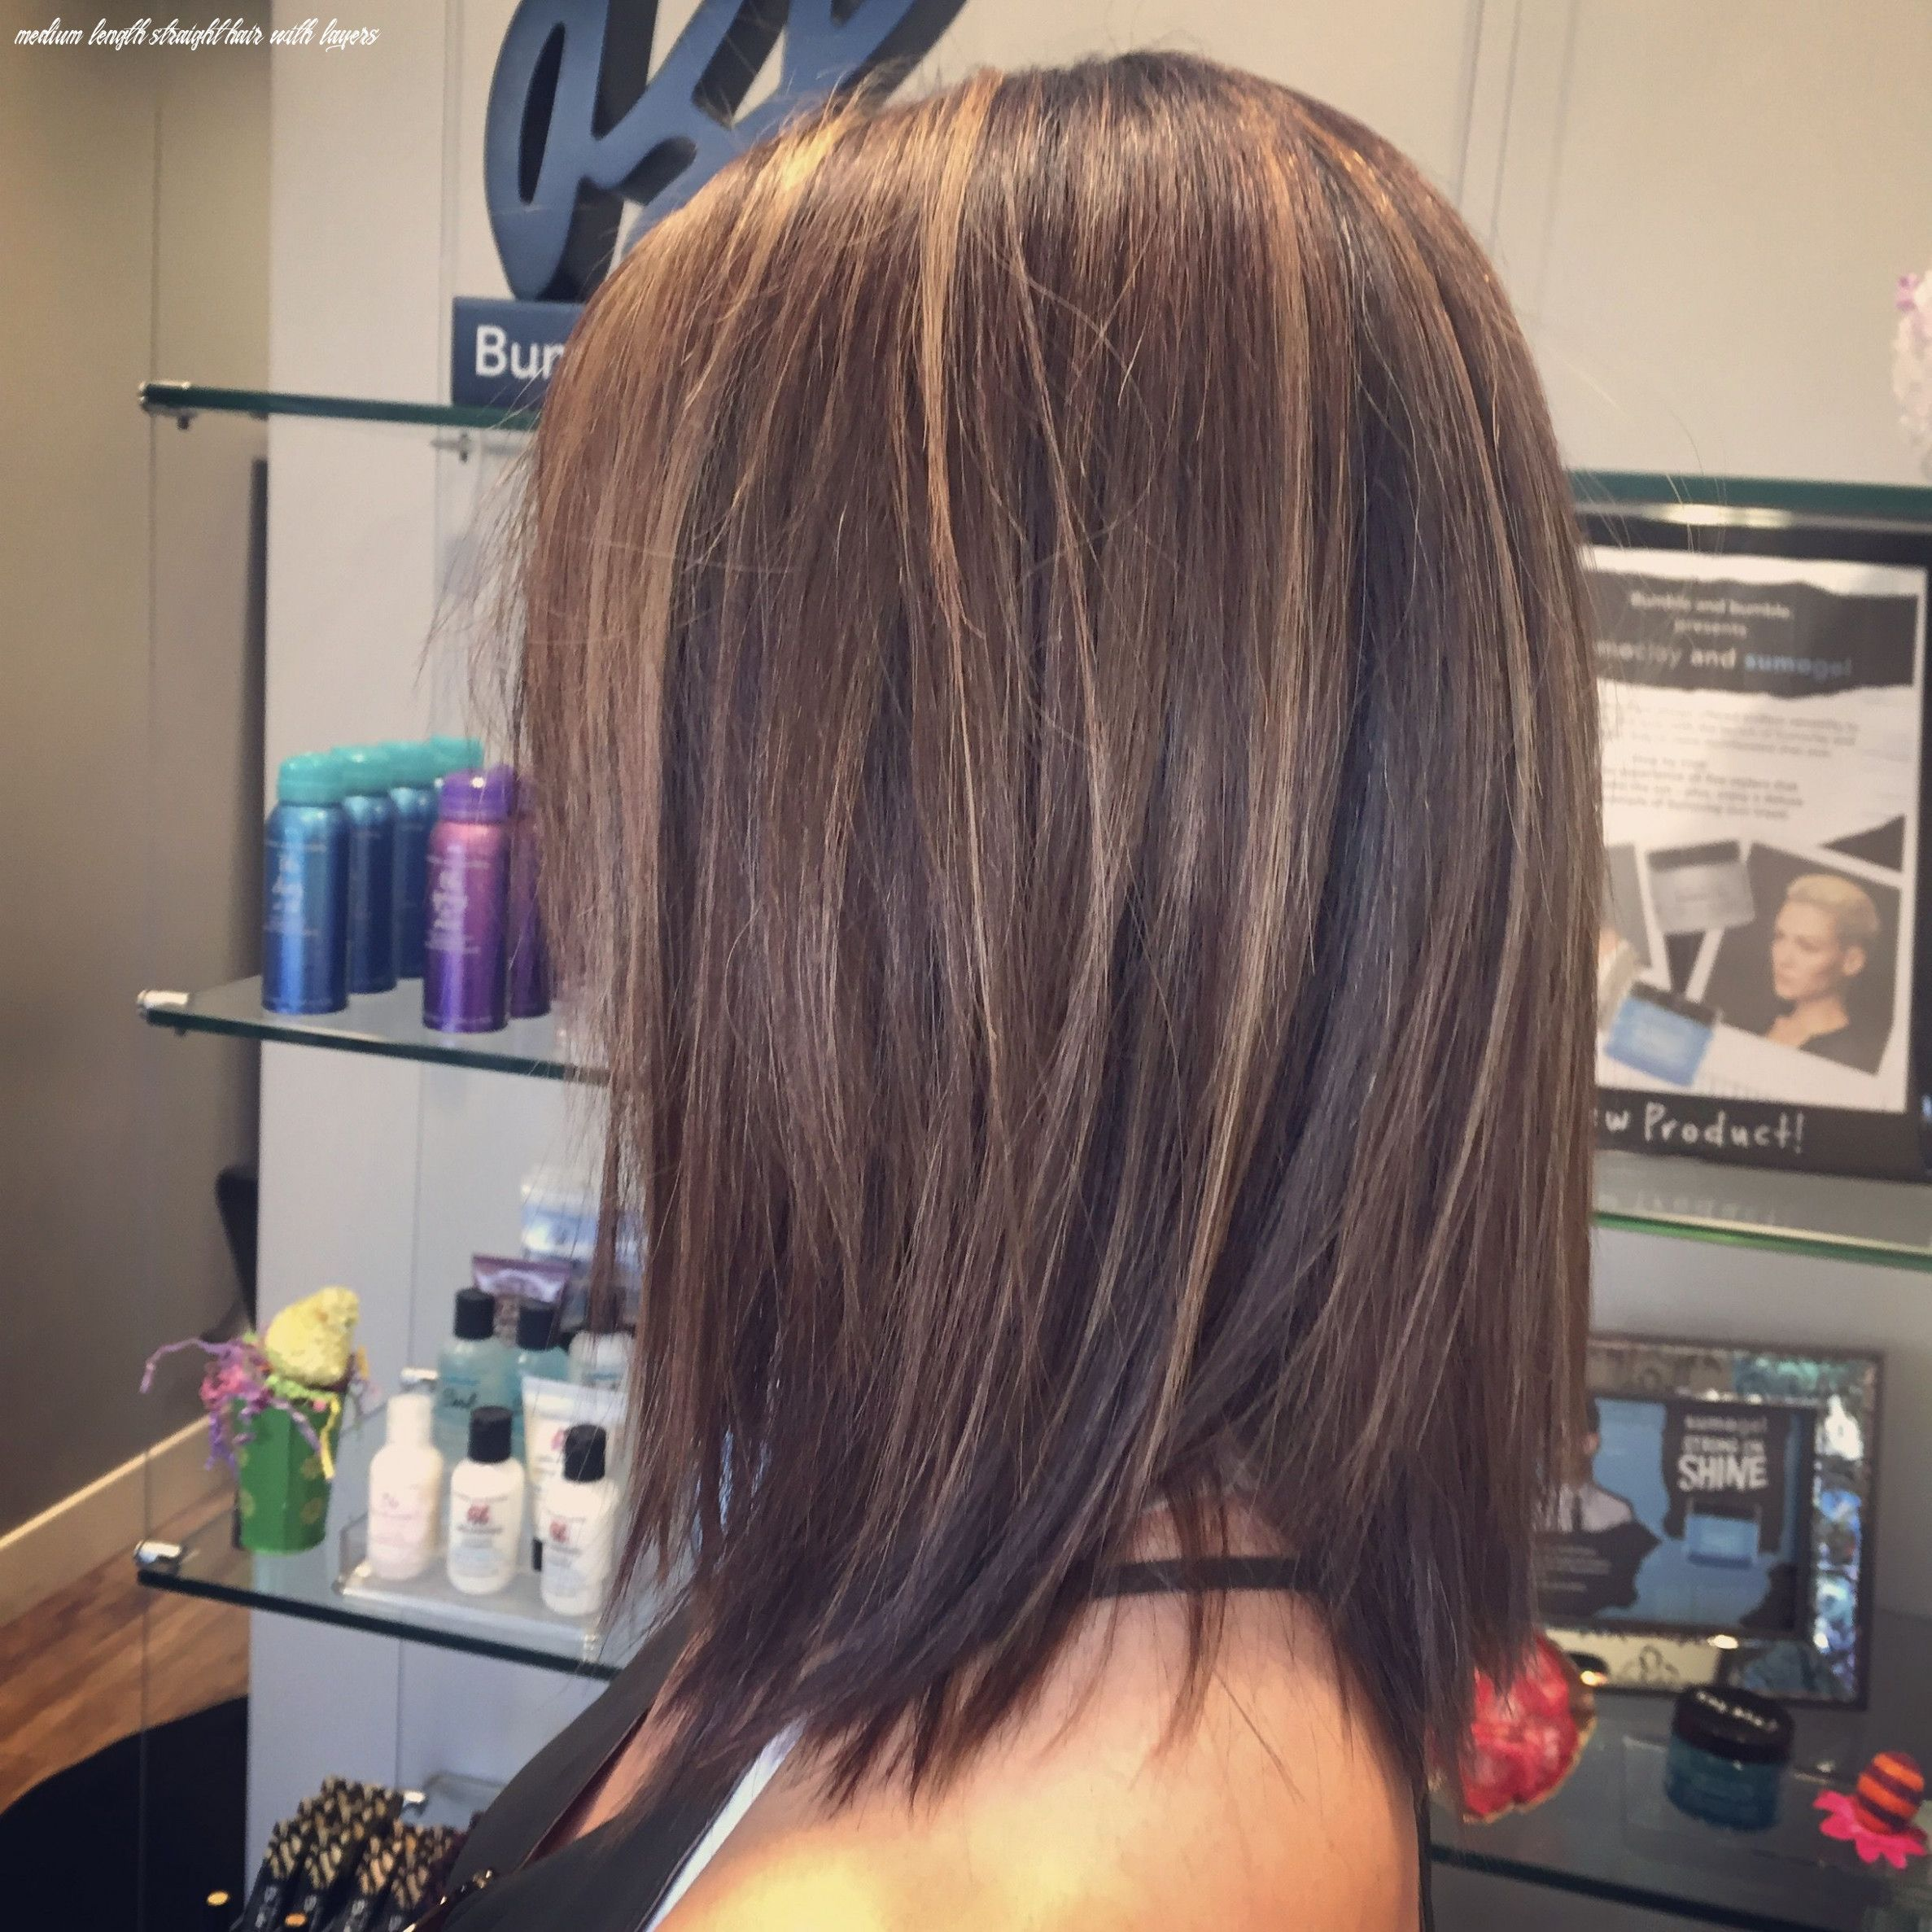 11 Medium Length Straight Hair With Layers - Undercut Hairstyle